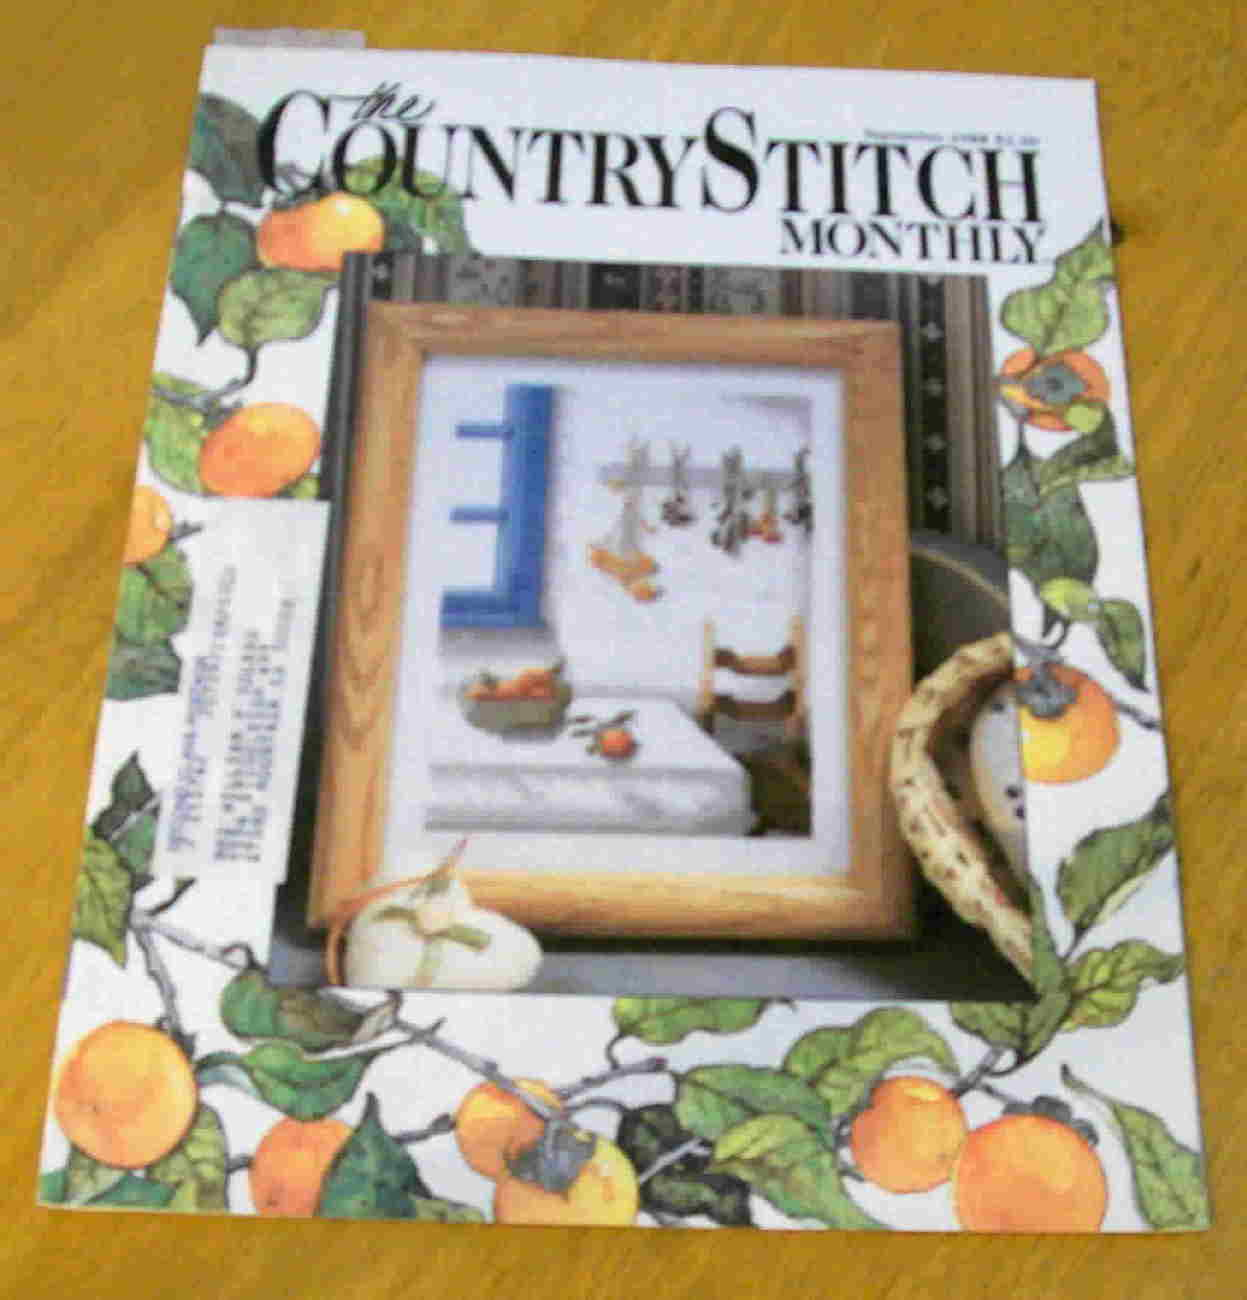 The Country Stitch Monthly, September 1988